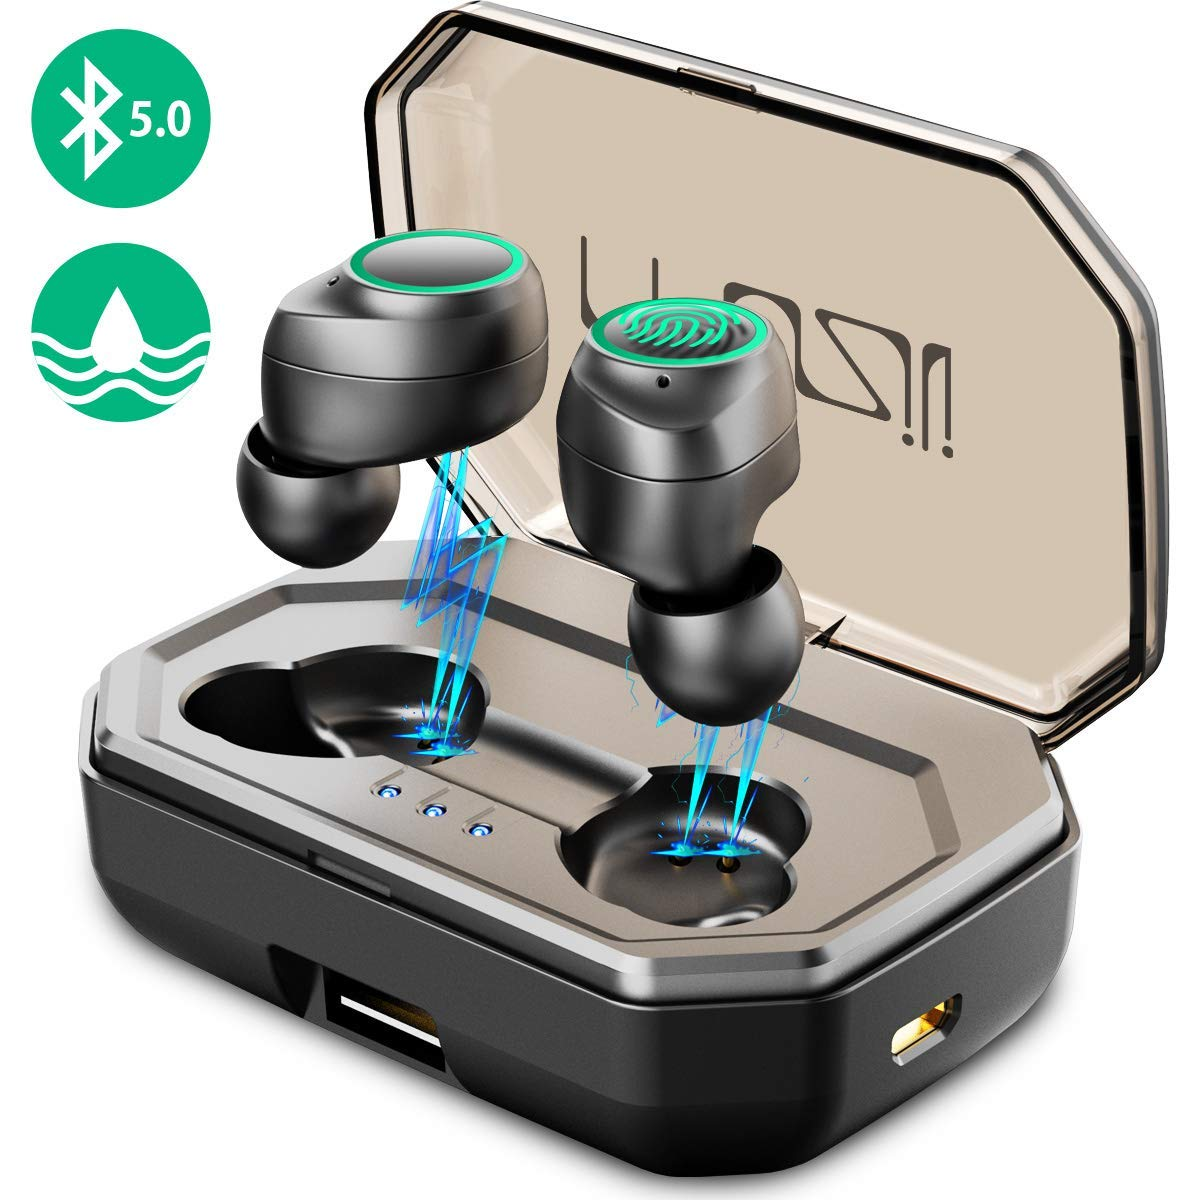 120h Play Time Muzili Sports True Wireless Earbuds, Bluetooth 5.0, 3000mAh Charging Box for 120h Music Time, 9mm Drivers for Stereo Hi-Fi Sound, IPX6 Waterproof in Ear, Noise-Cancelling Headphones